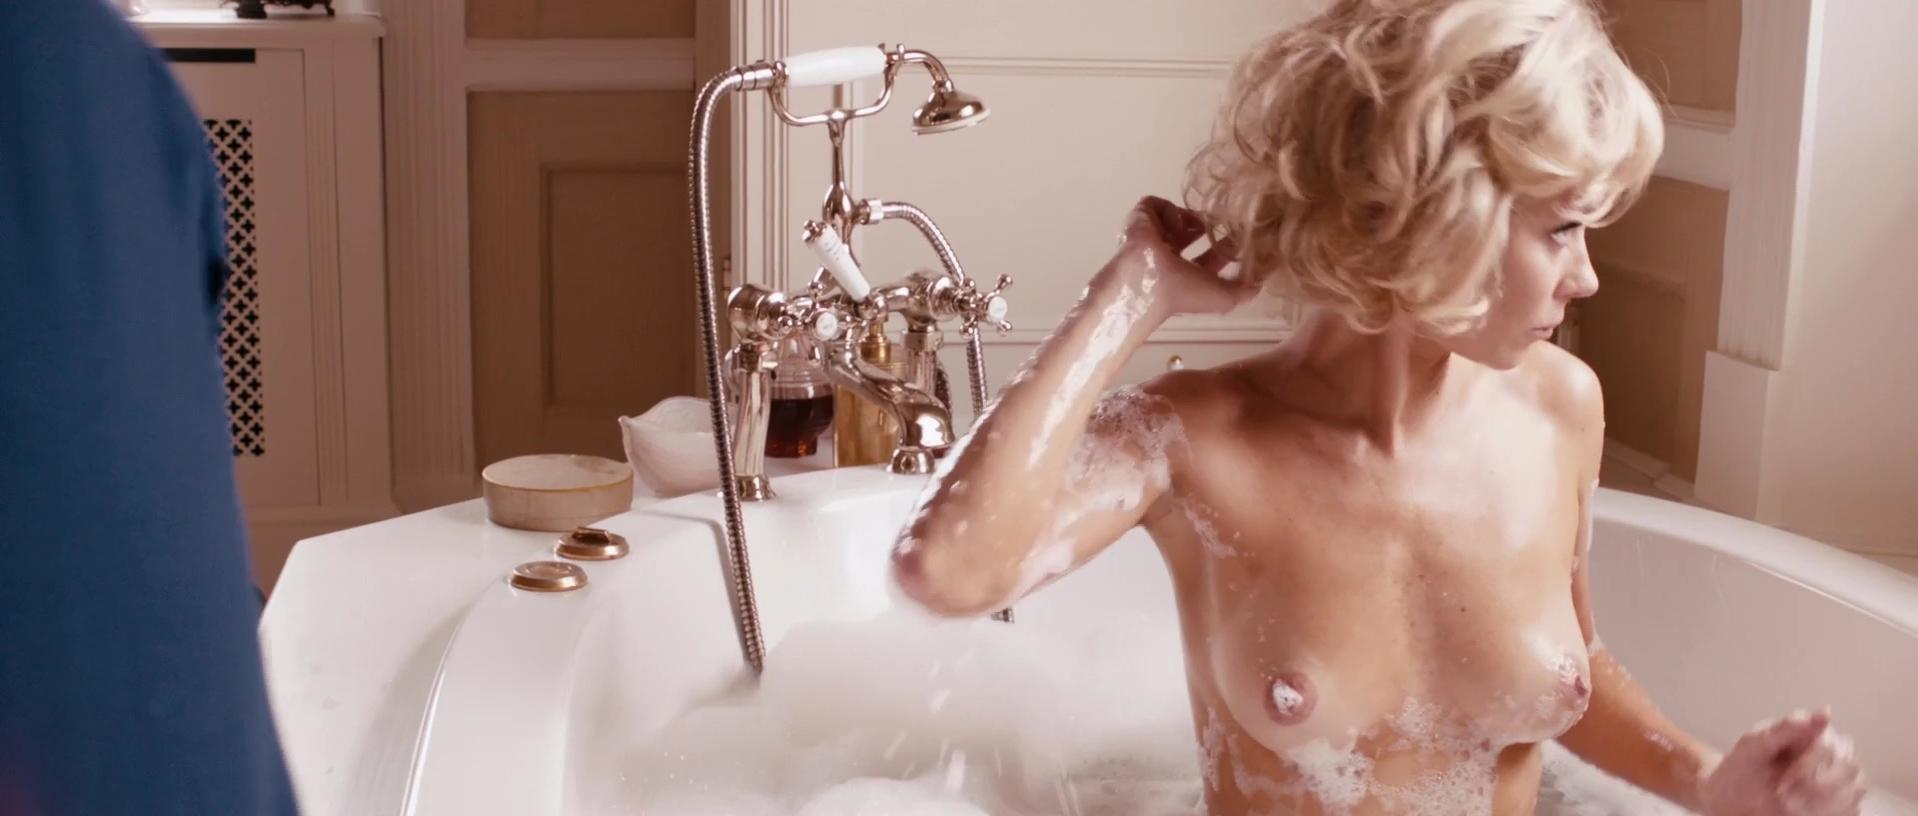 Anna Friel nude - The Look of Love (2013)